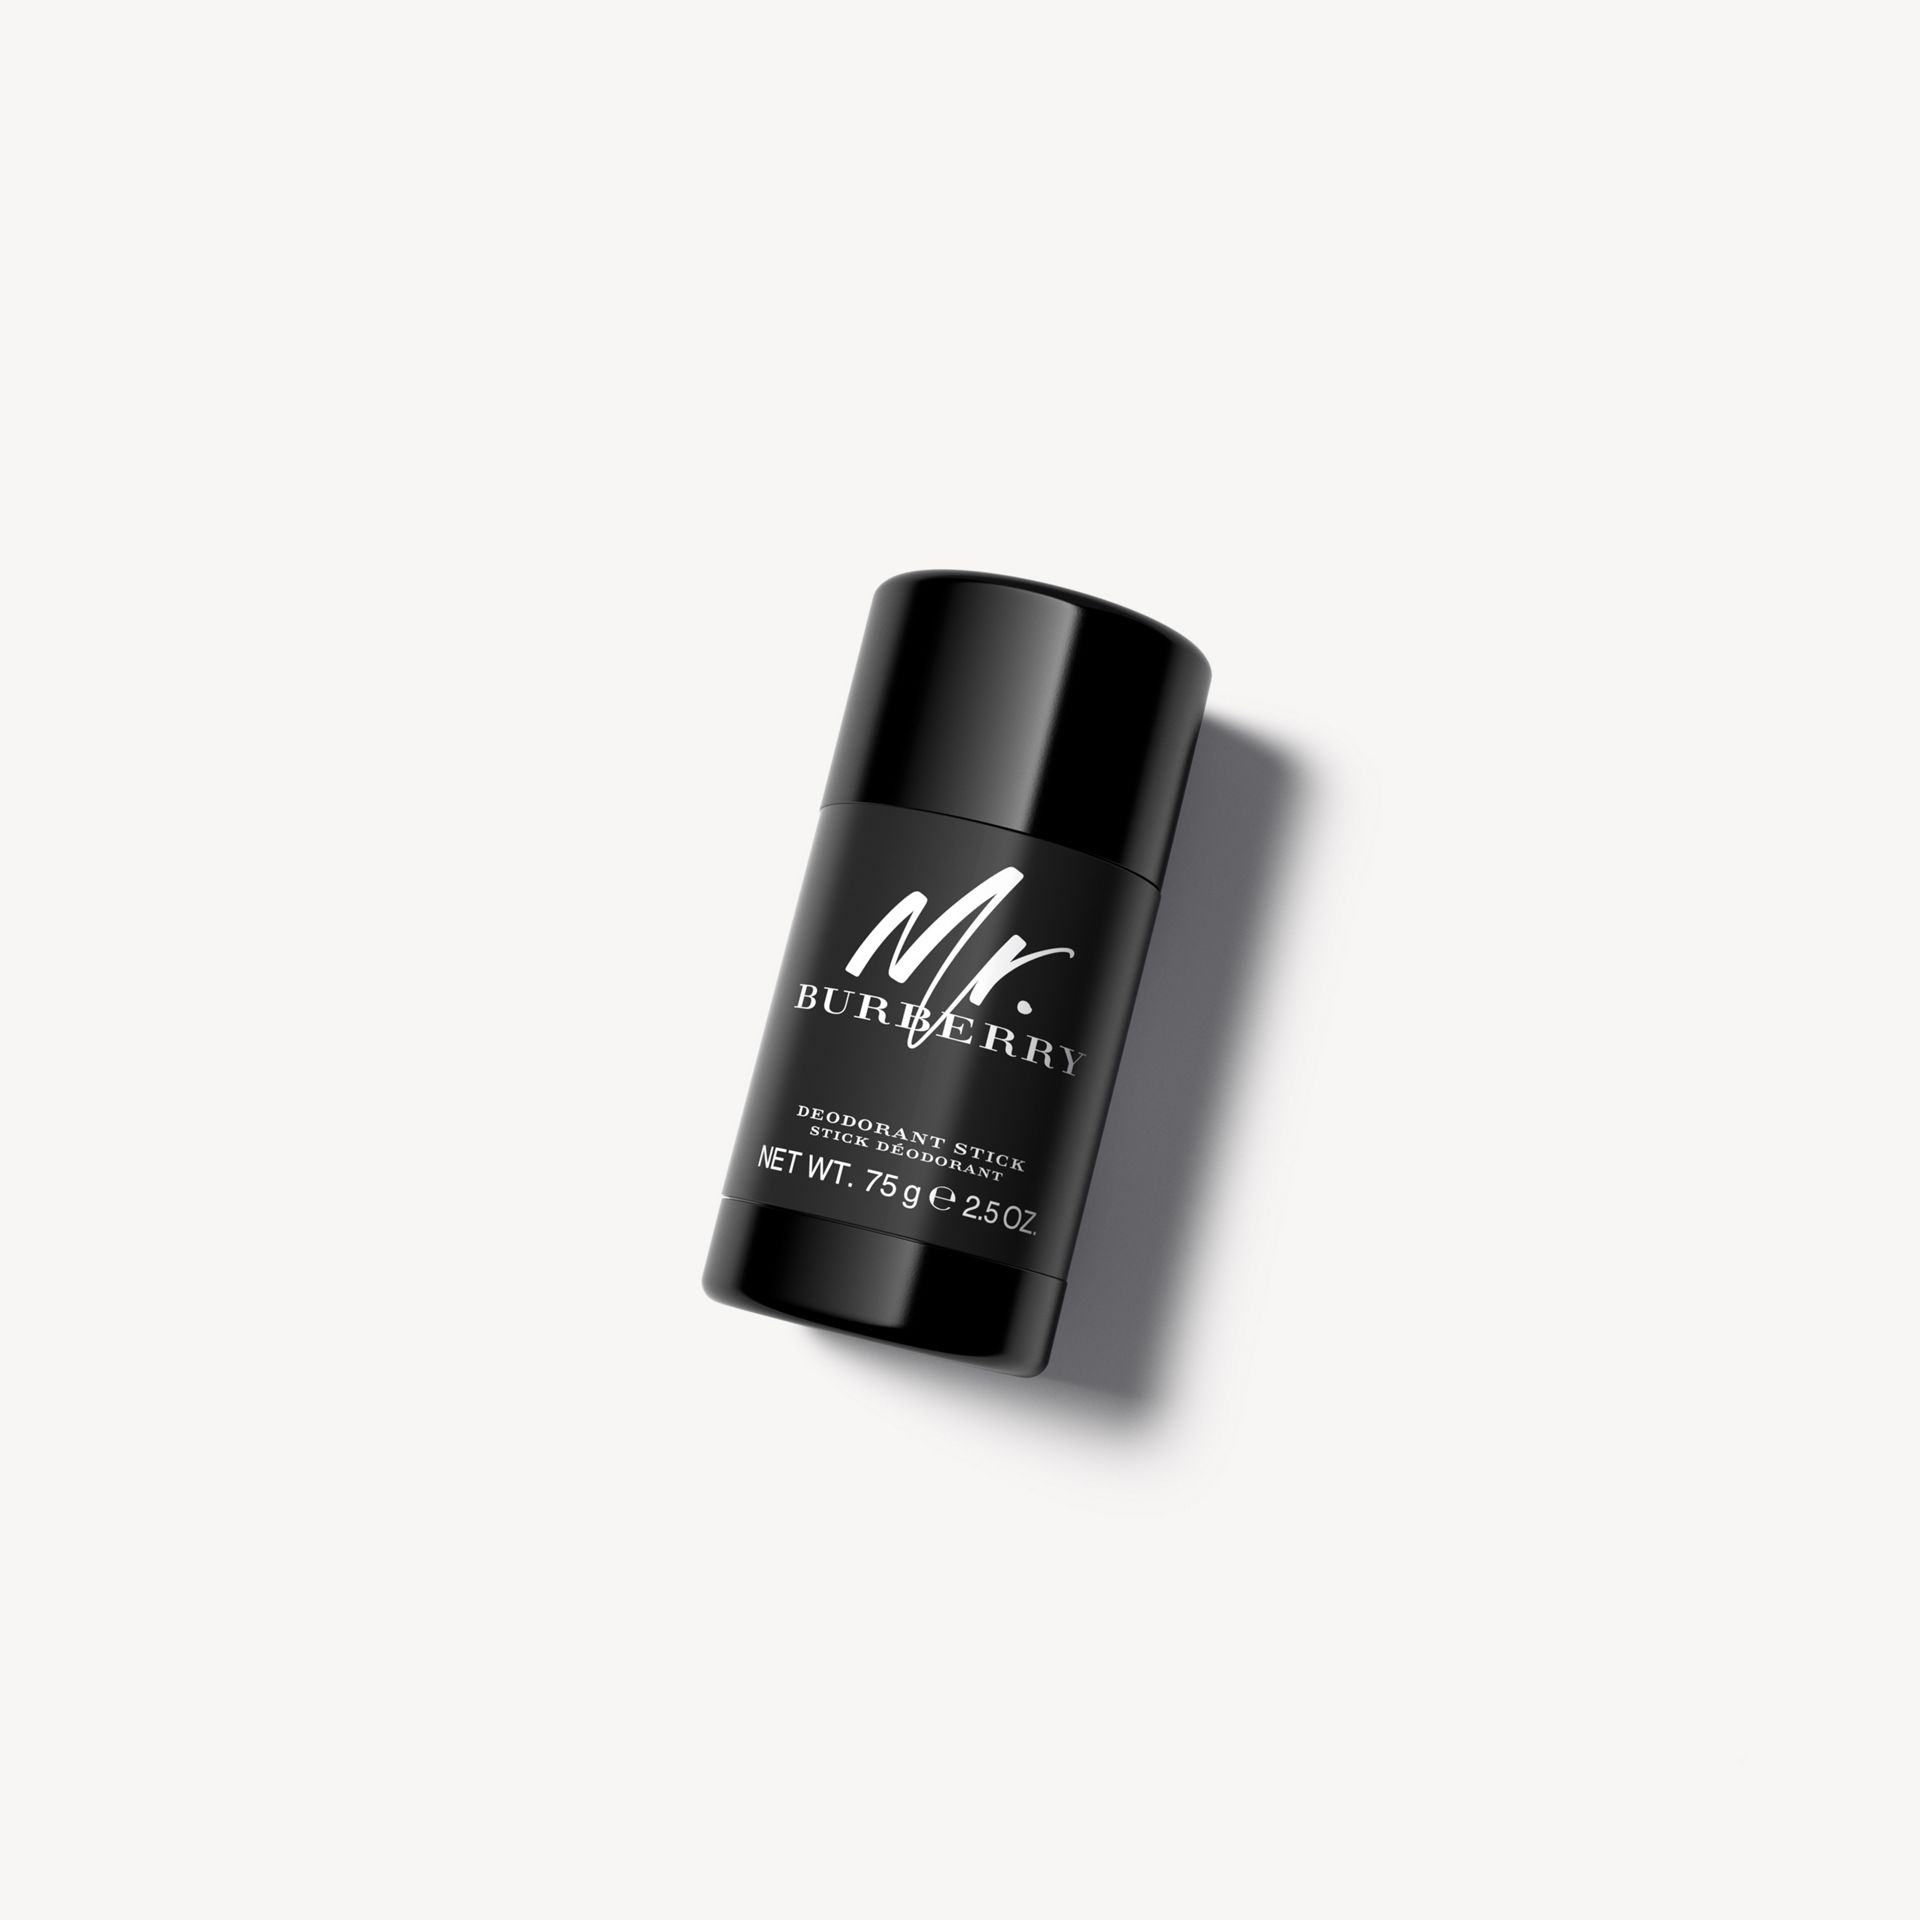 Mr. Burberry Deodorant Stick 75g - gallery image 1